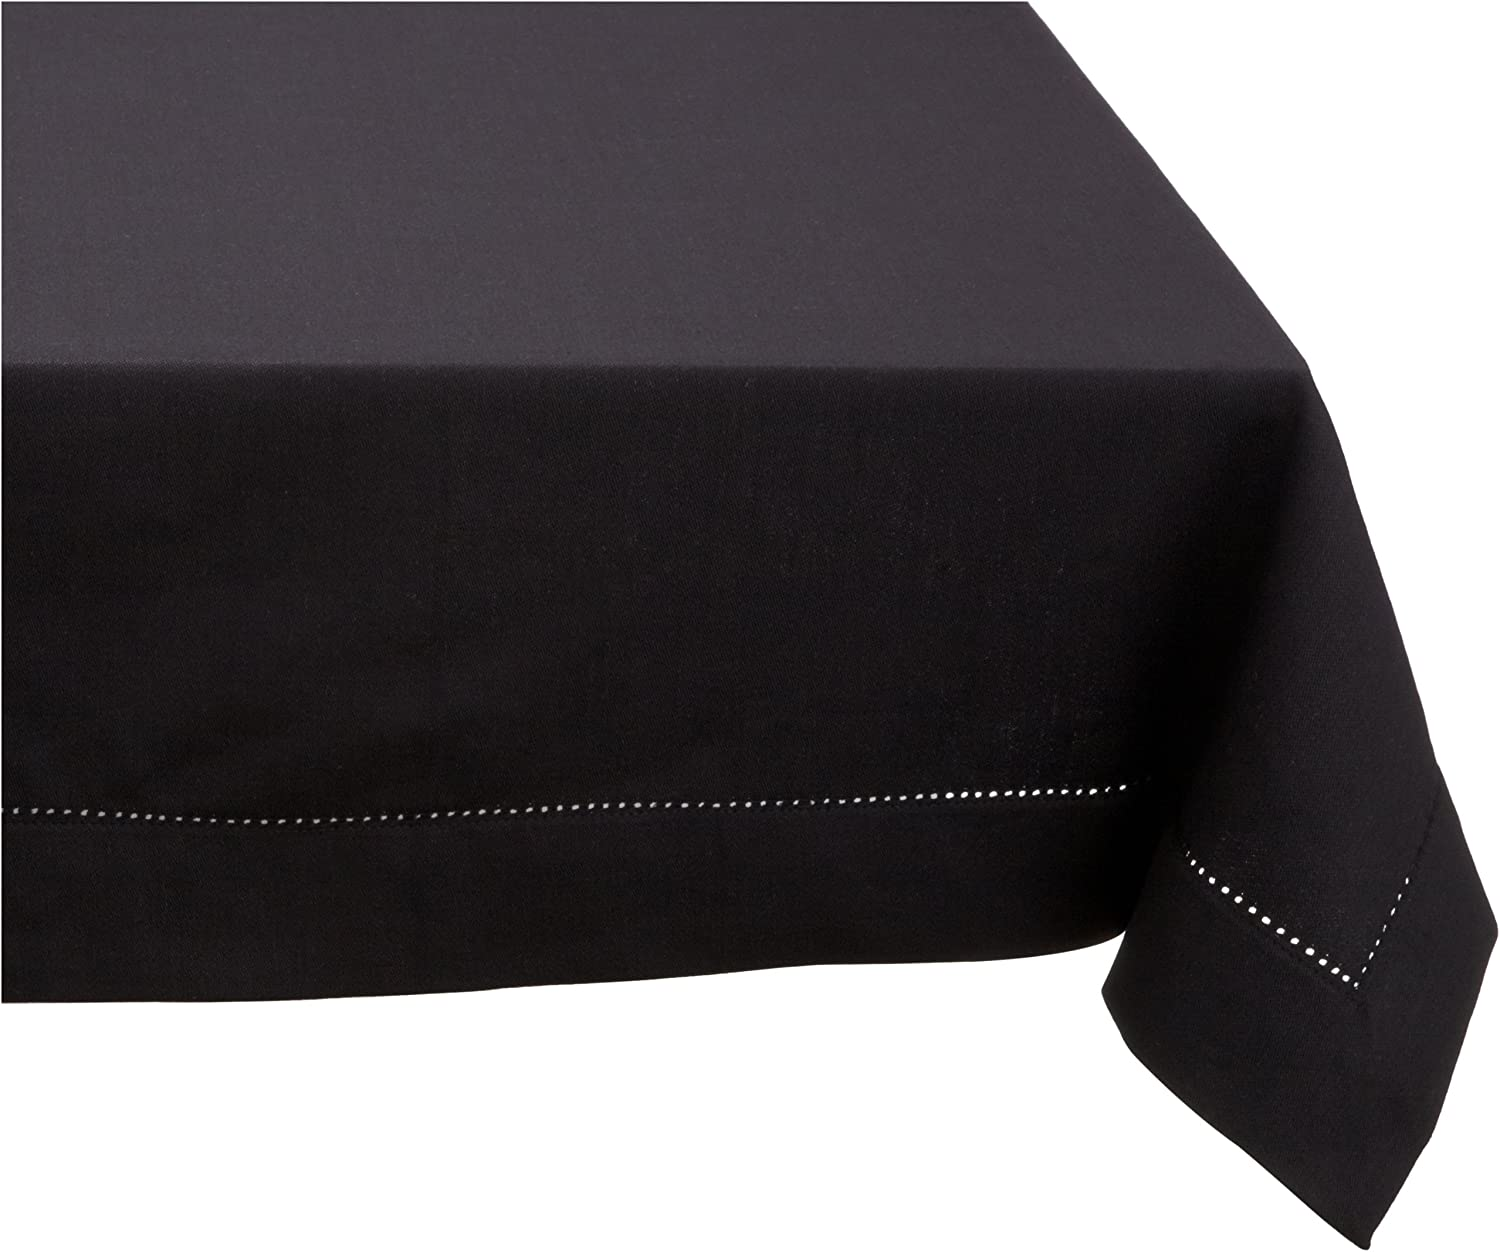 Mahogany Solid-color 100-Percent Cotton Hemstitch Tablecloth, 60-Inch by 120-Inch Rectangle, Black